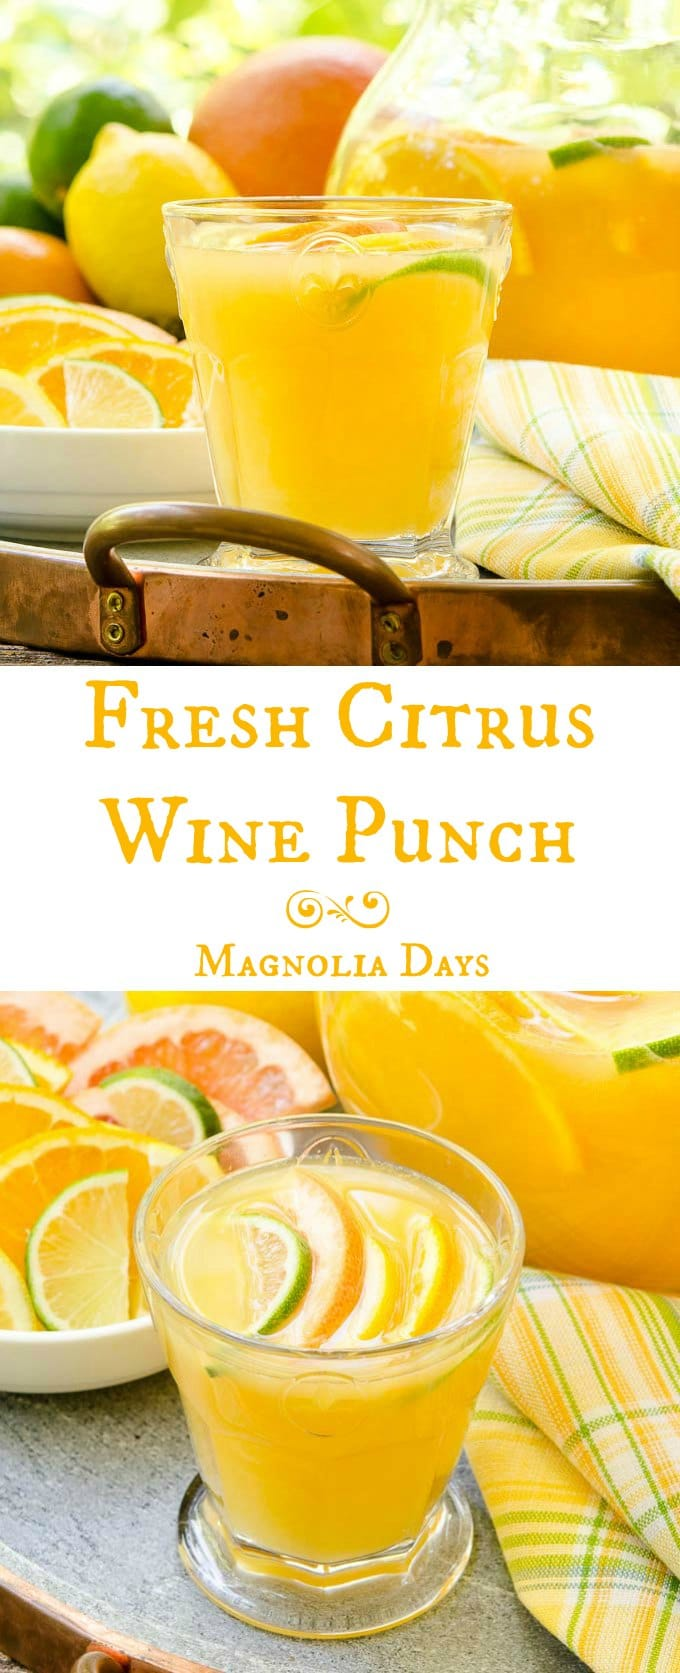 Fresh Citrus Wine Punch is made with fresh orange, grapefruit, lemon, and lime juices. It's great for brunch, showers, potlucks, or any celebration.